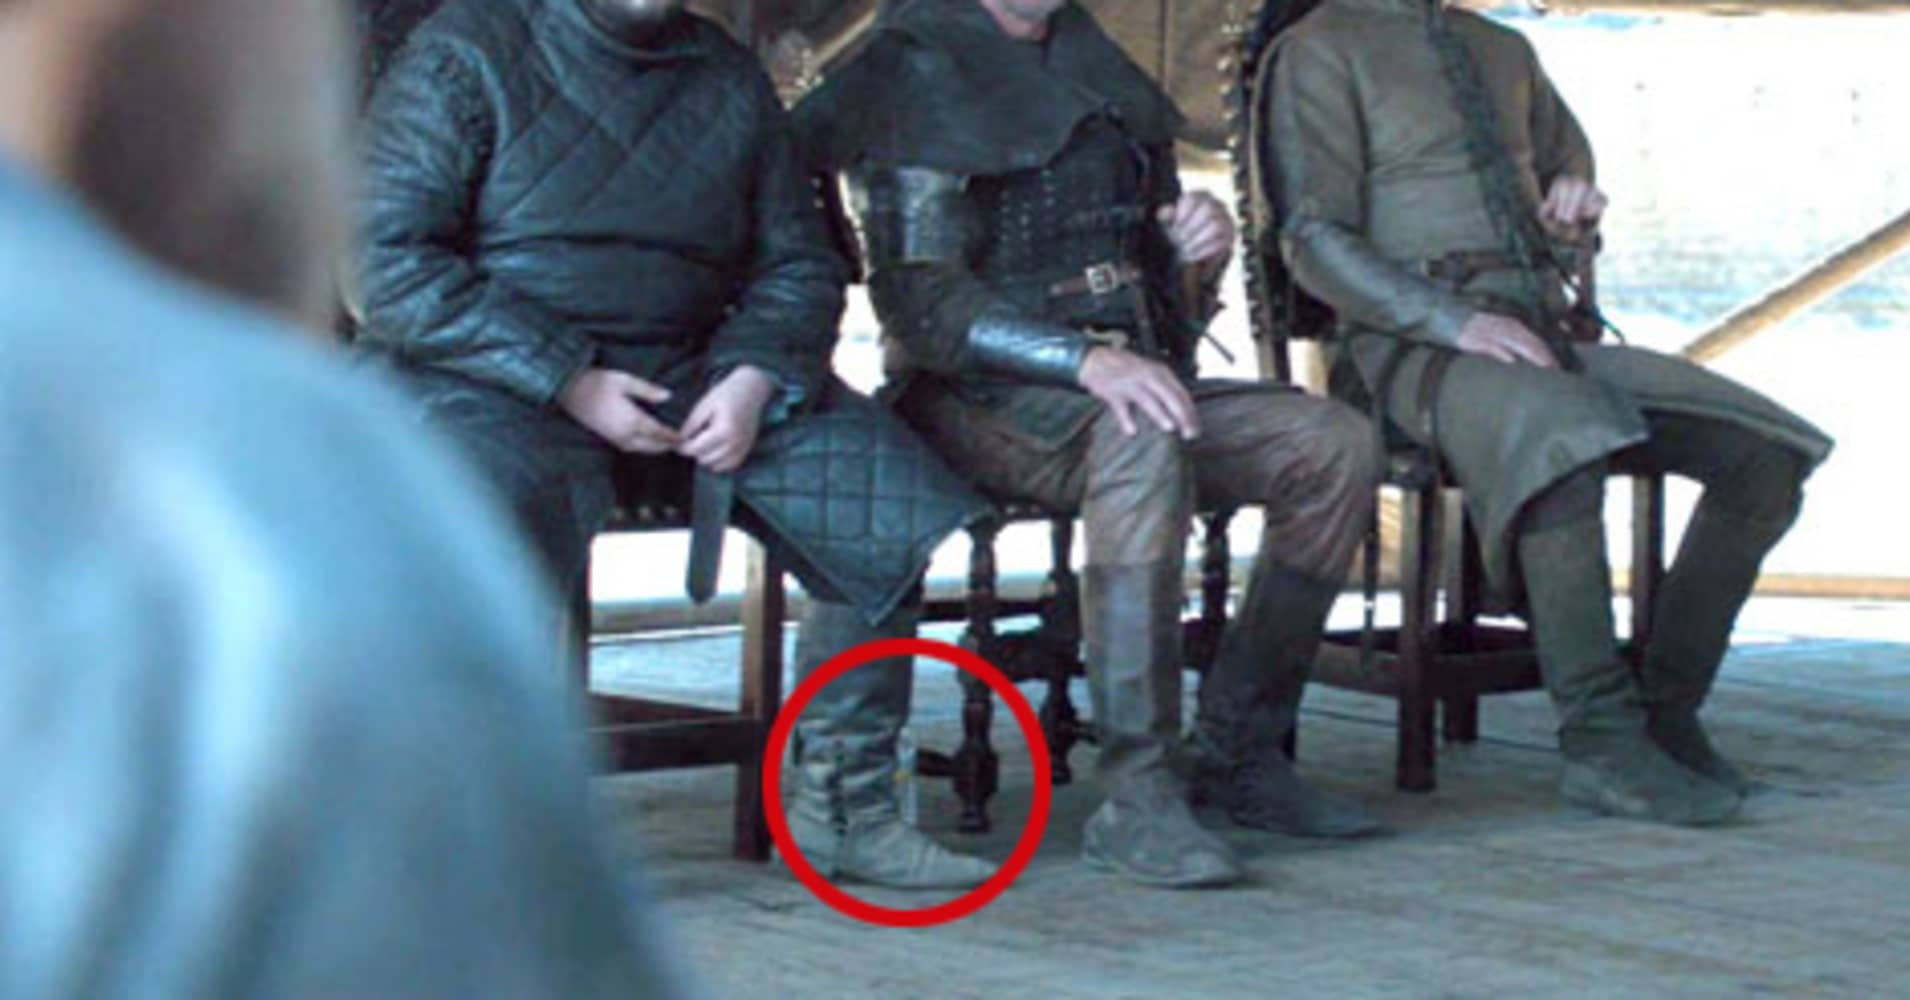 a7cba3c96b 'Game of Thrones' finale left water bottles in key scene, further inciting  diehard fans